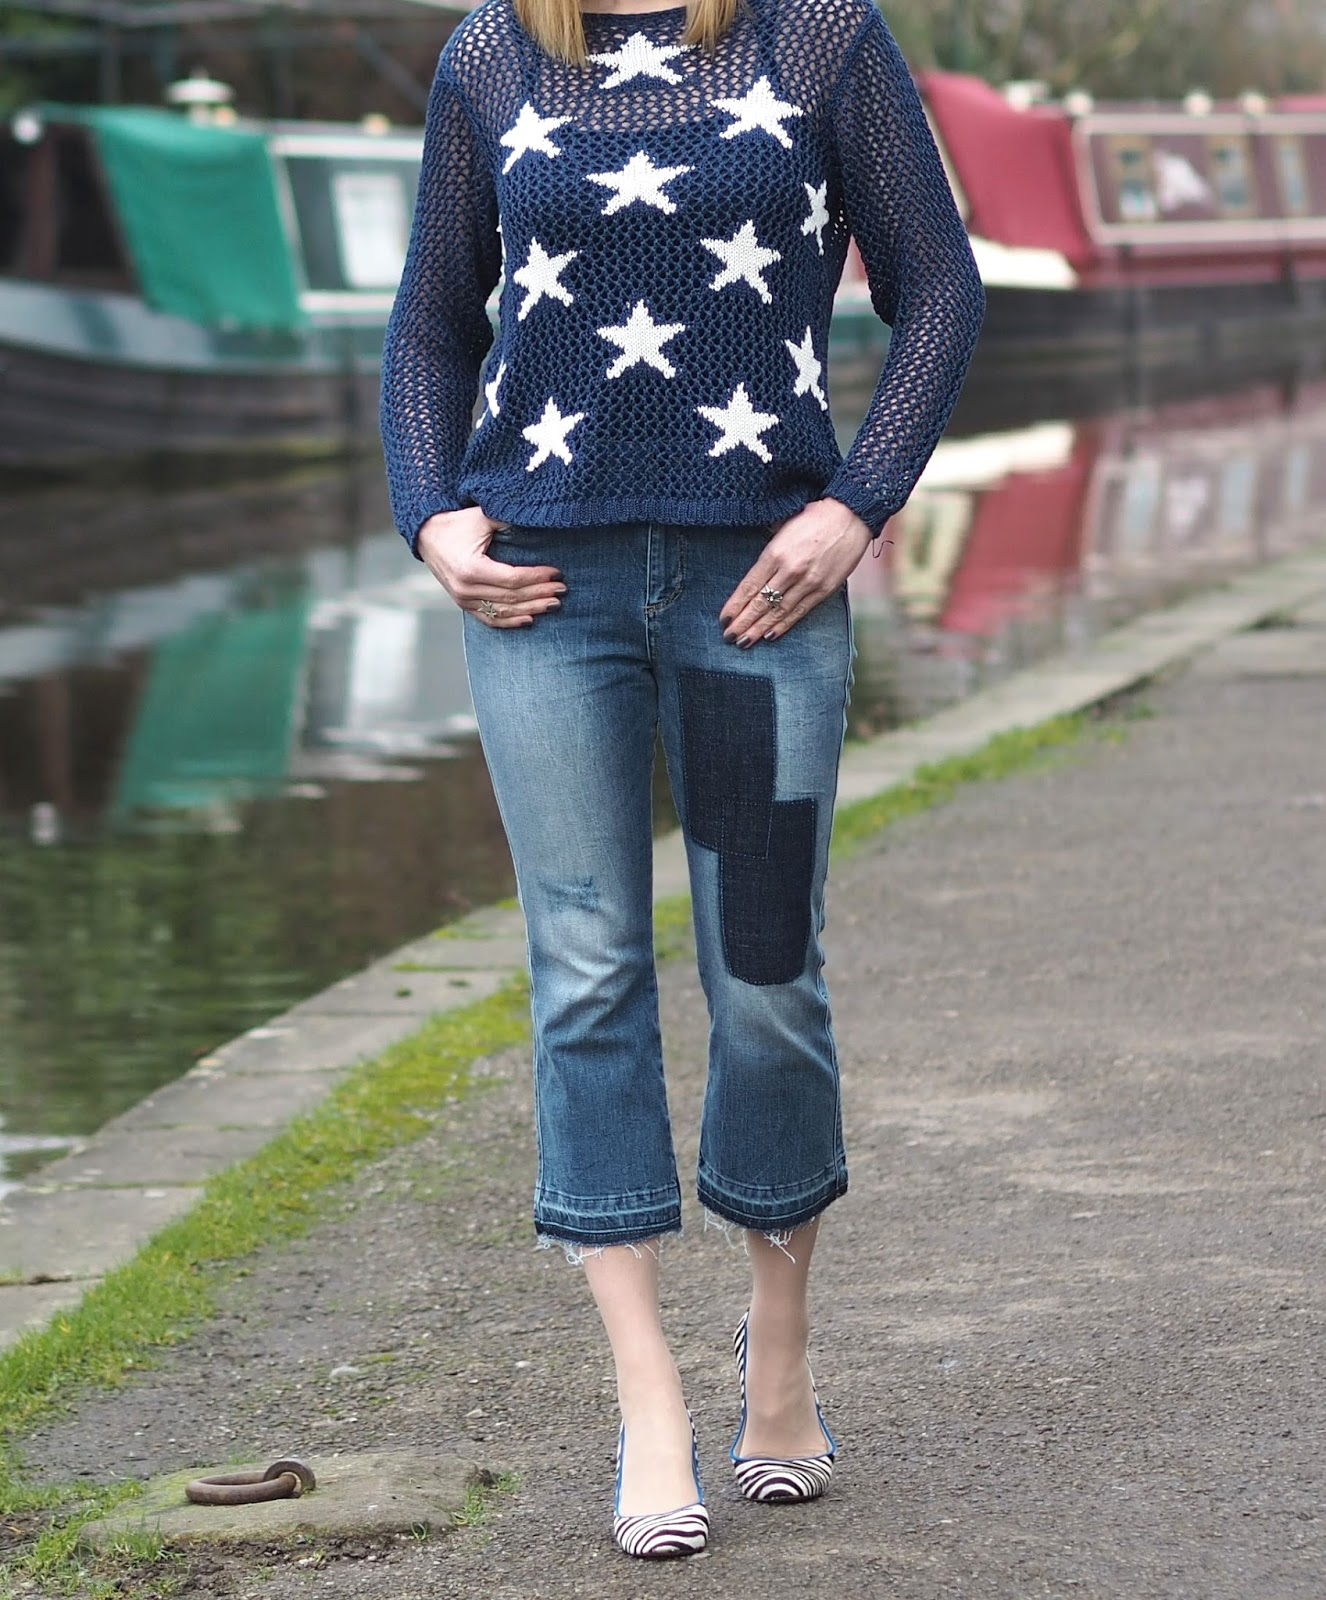 Pointelle star sweater, frayed patch jeans, zebra high-heeled shoes with blue trim, over 40